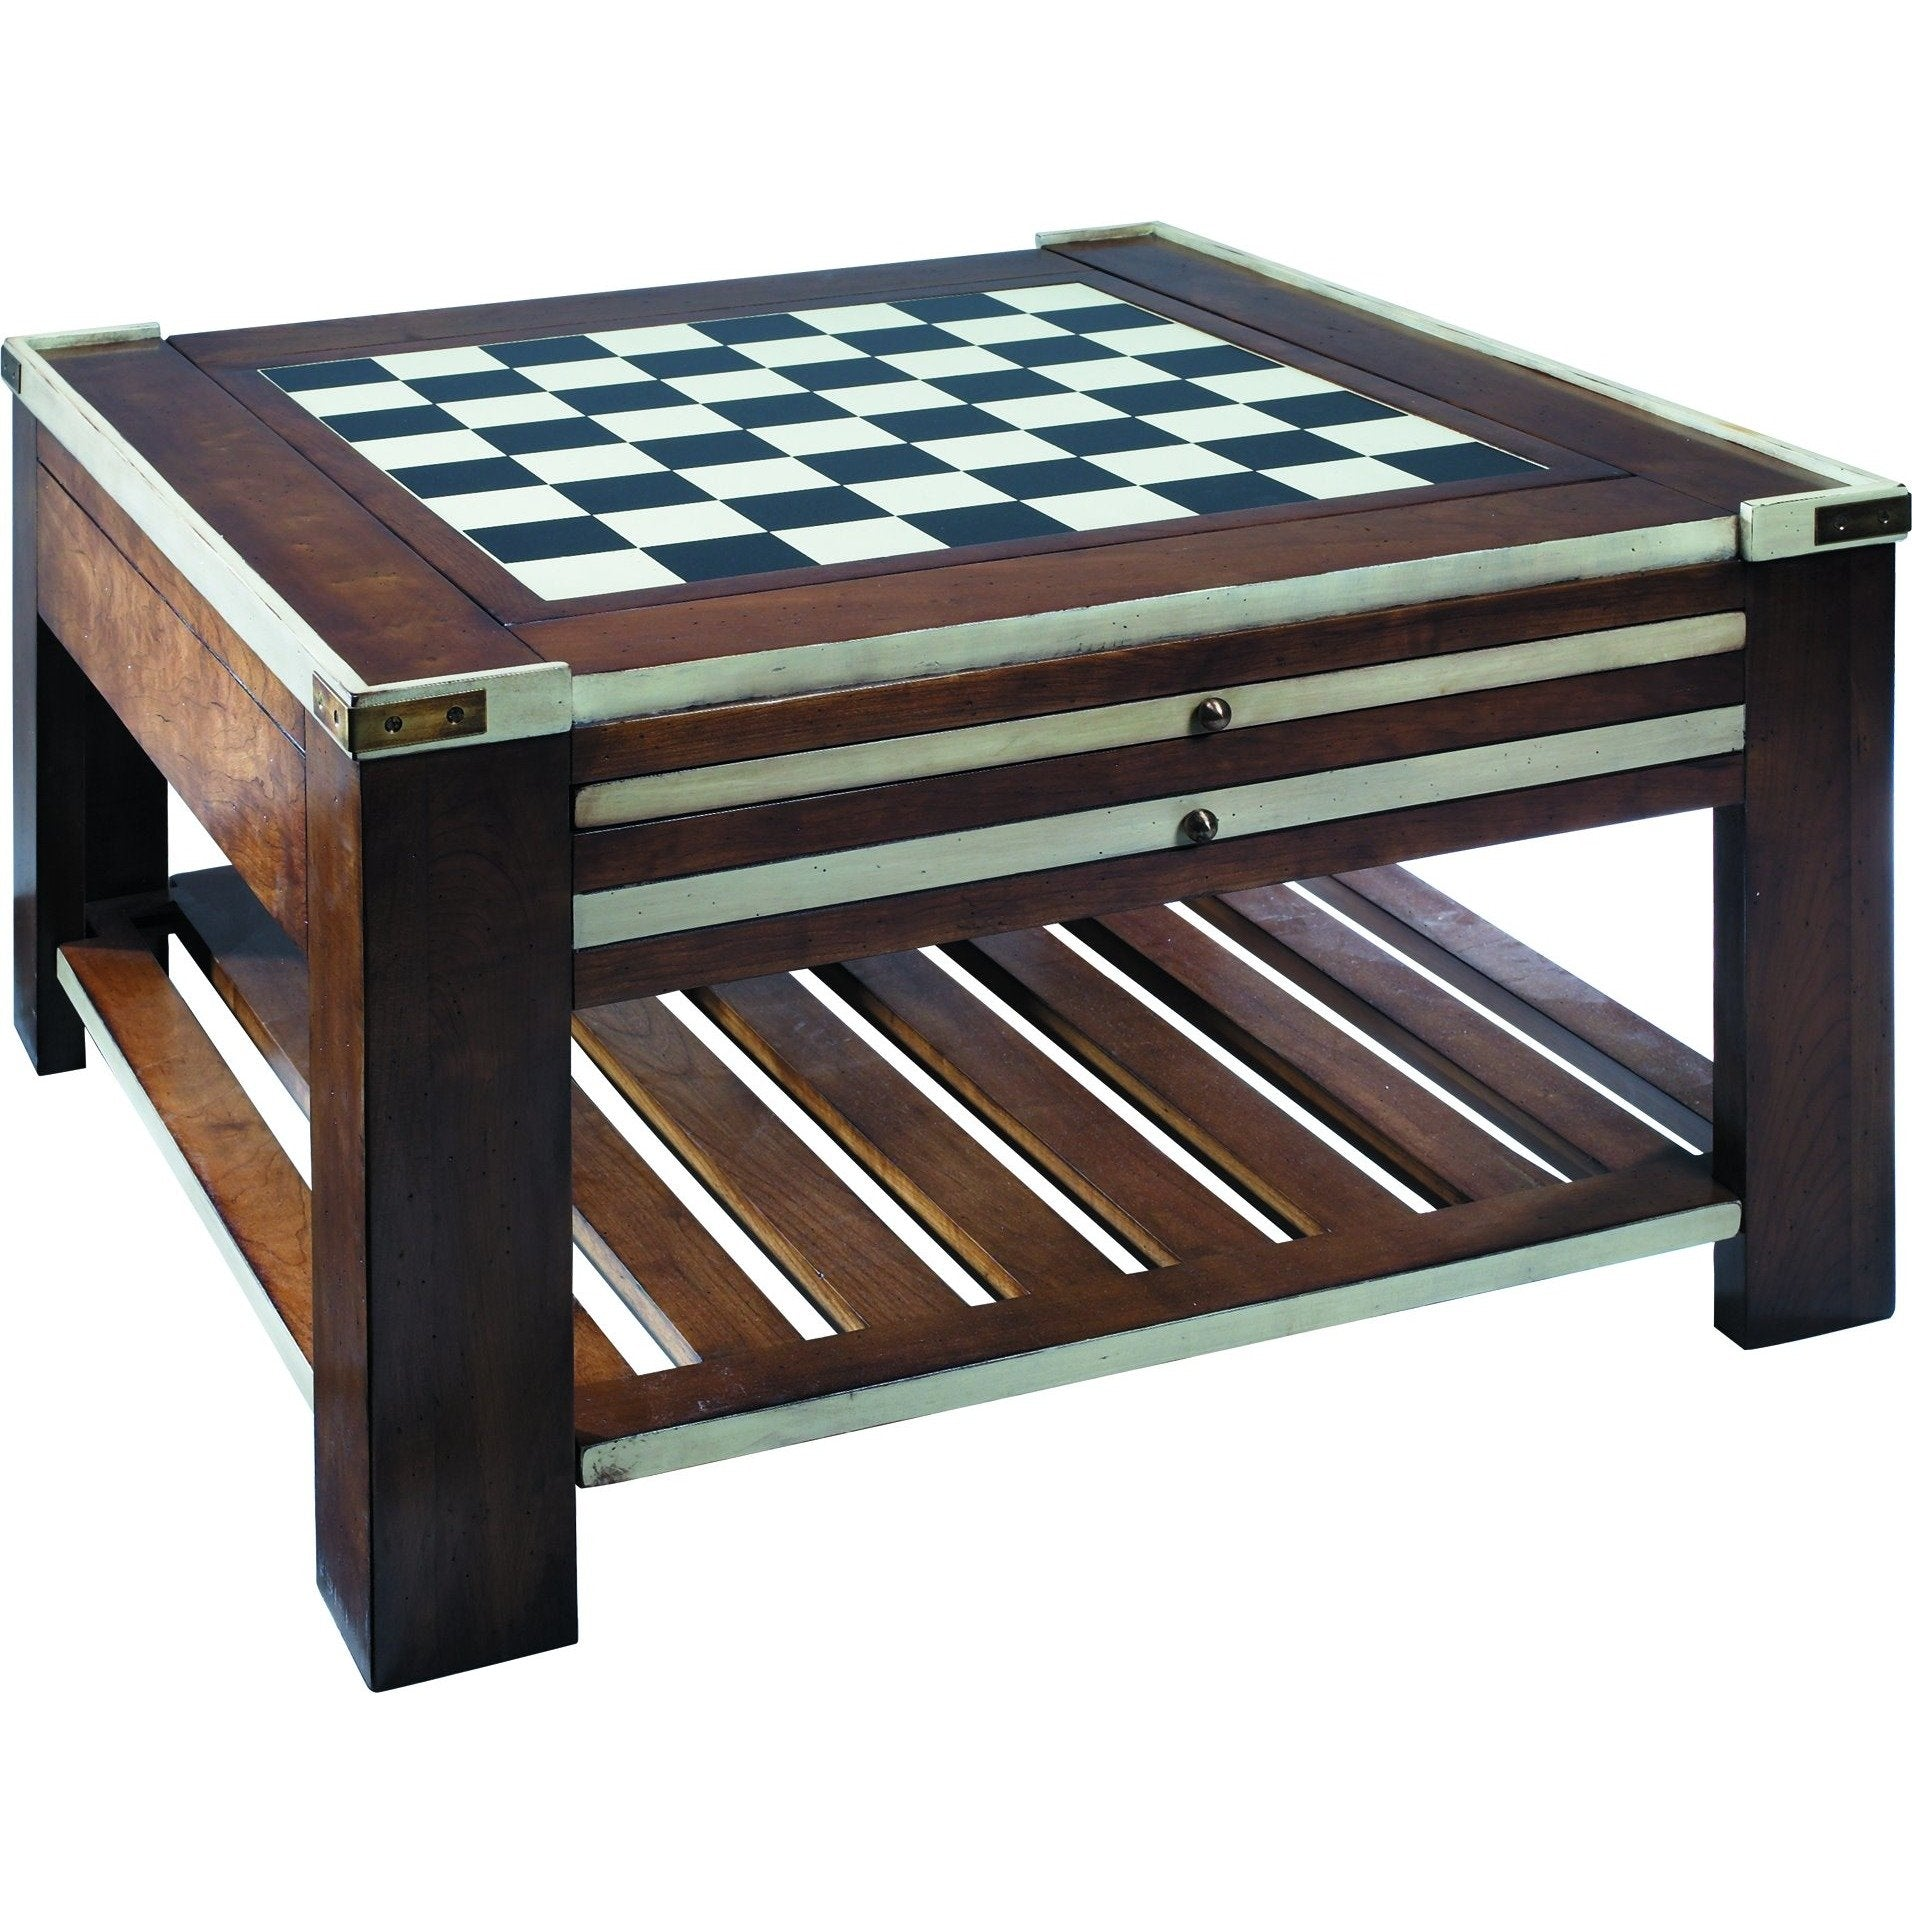 Convertible Chess & Games Table in 2 Finishes by Authentic Models